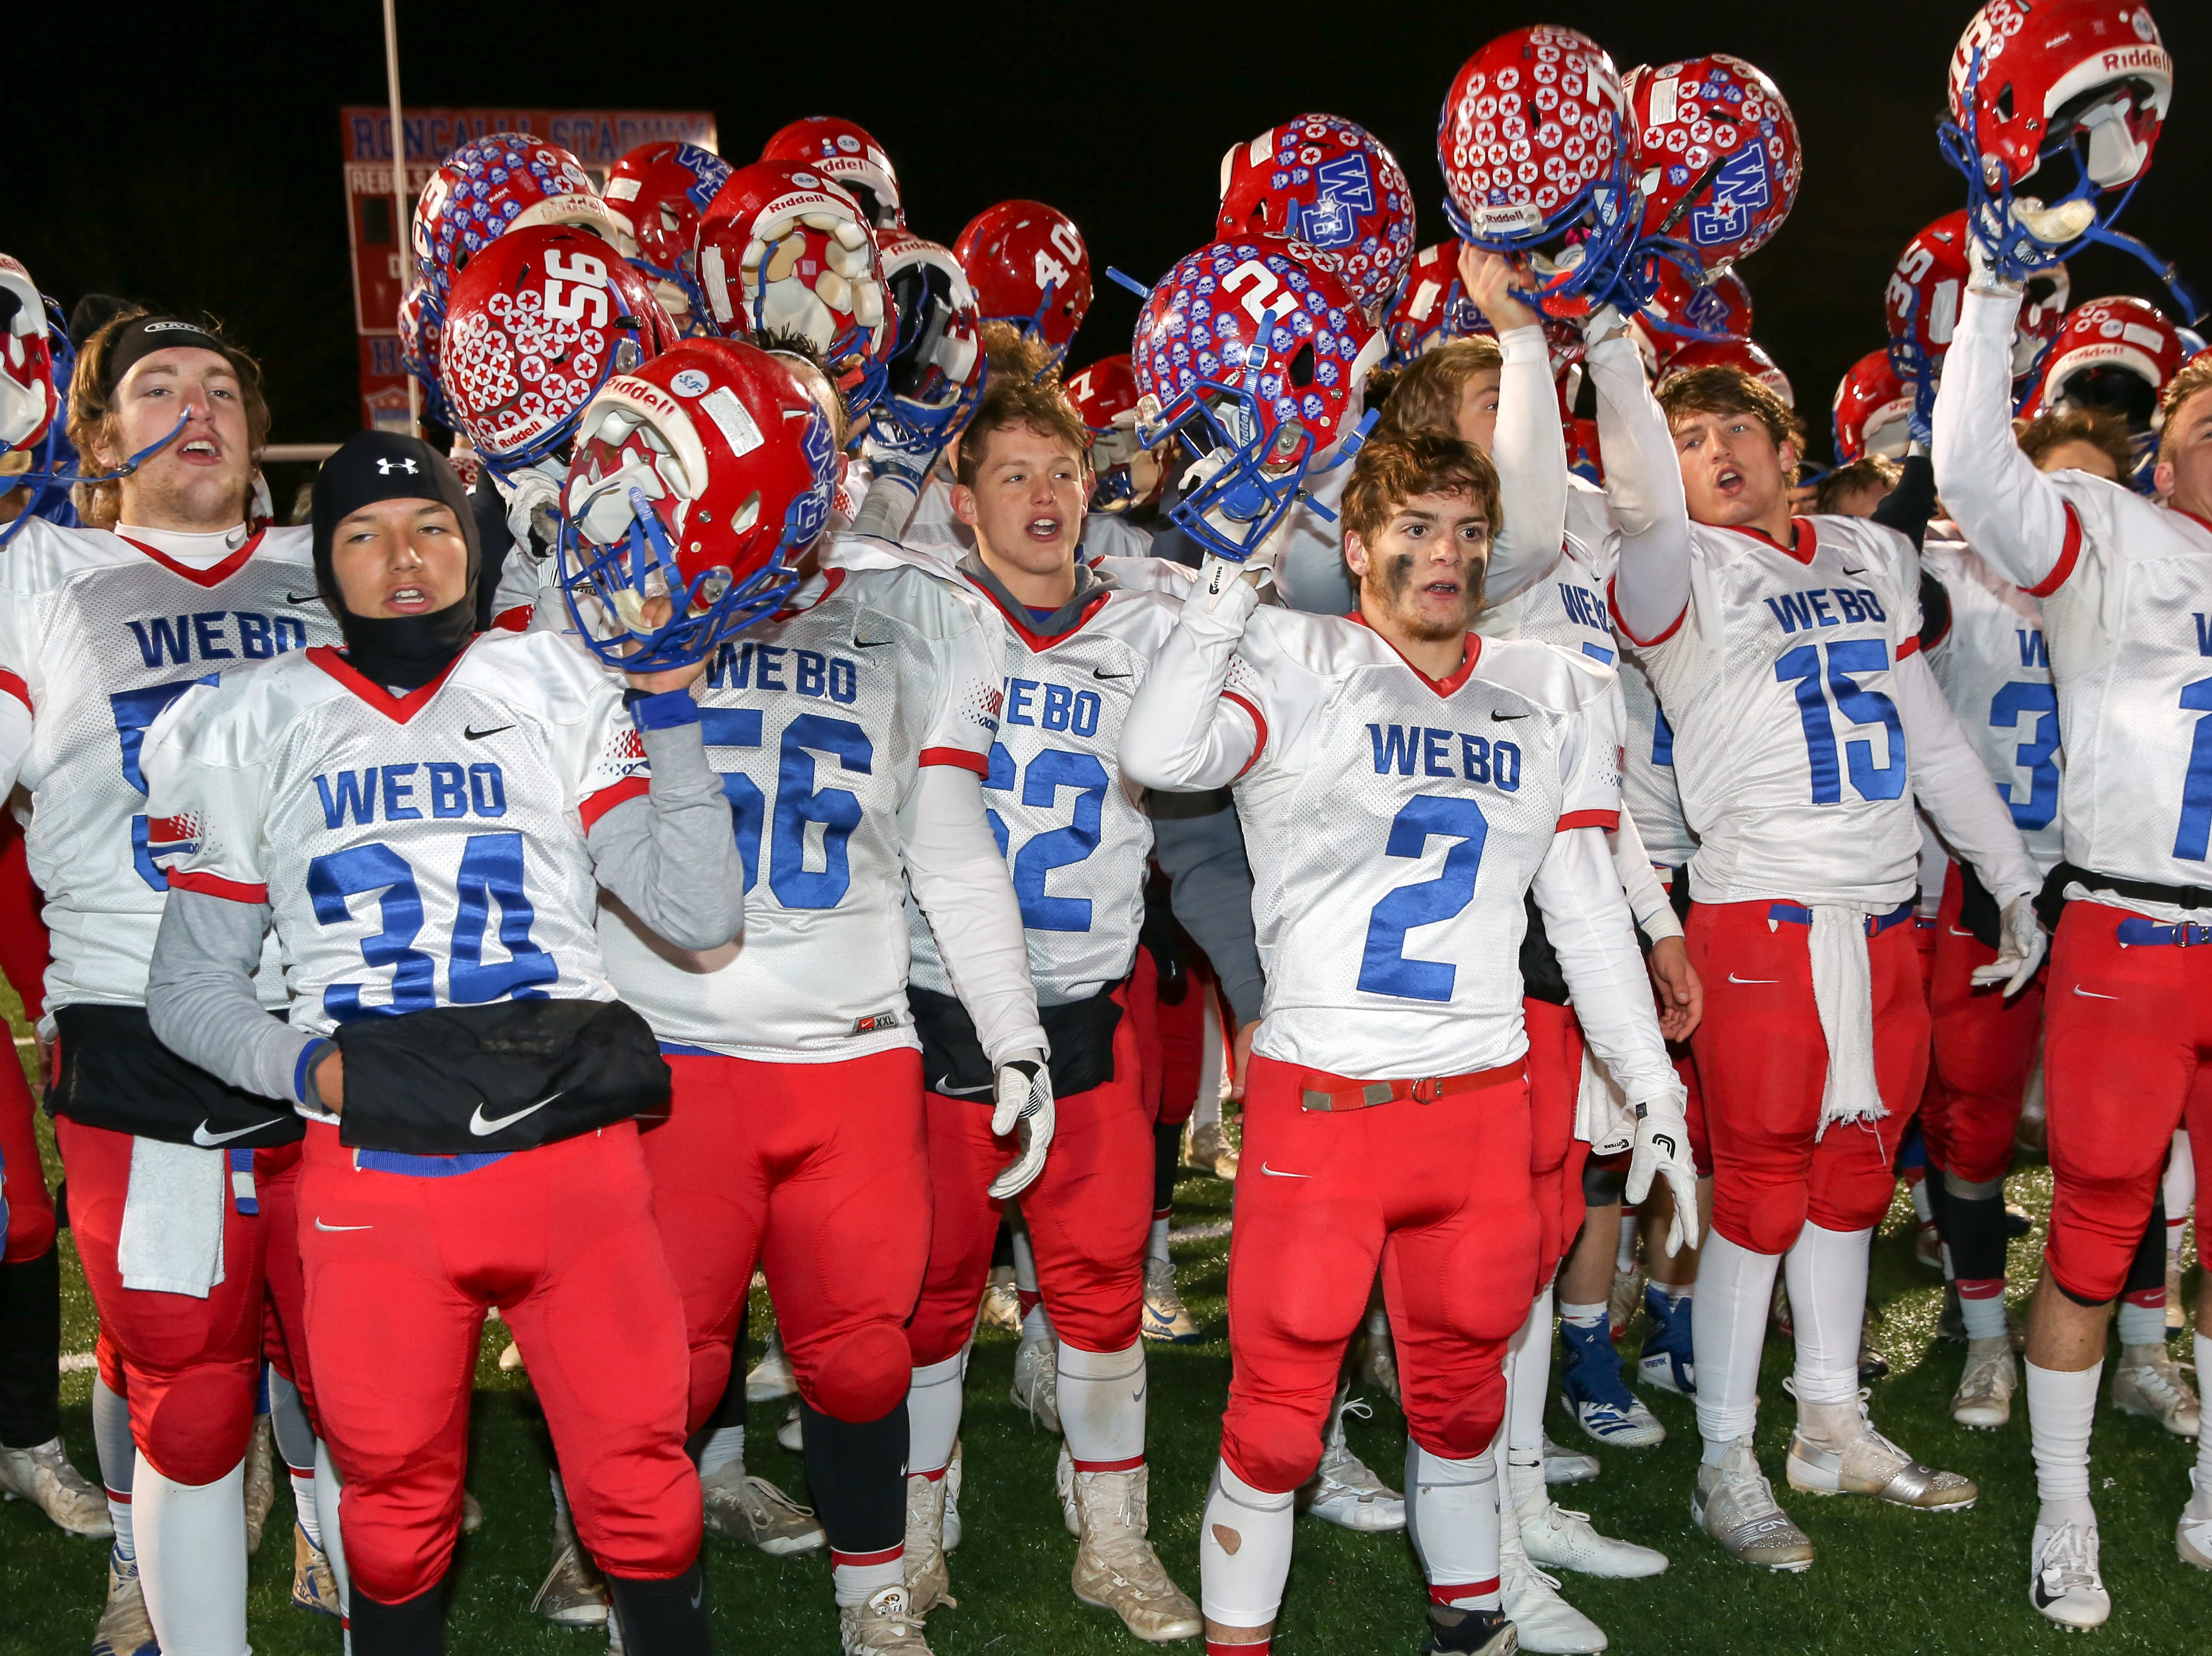 Western Boone celebrate their 19-7 victory in the Indianapolis Scecina vs Western Boone High School varsity football in the Class 2A Regional Championship held at Roncalli High School, Friday, November 9, 2018.